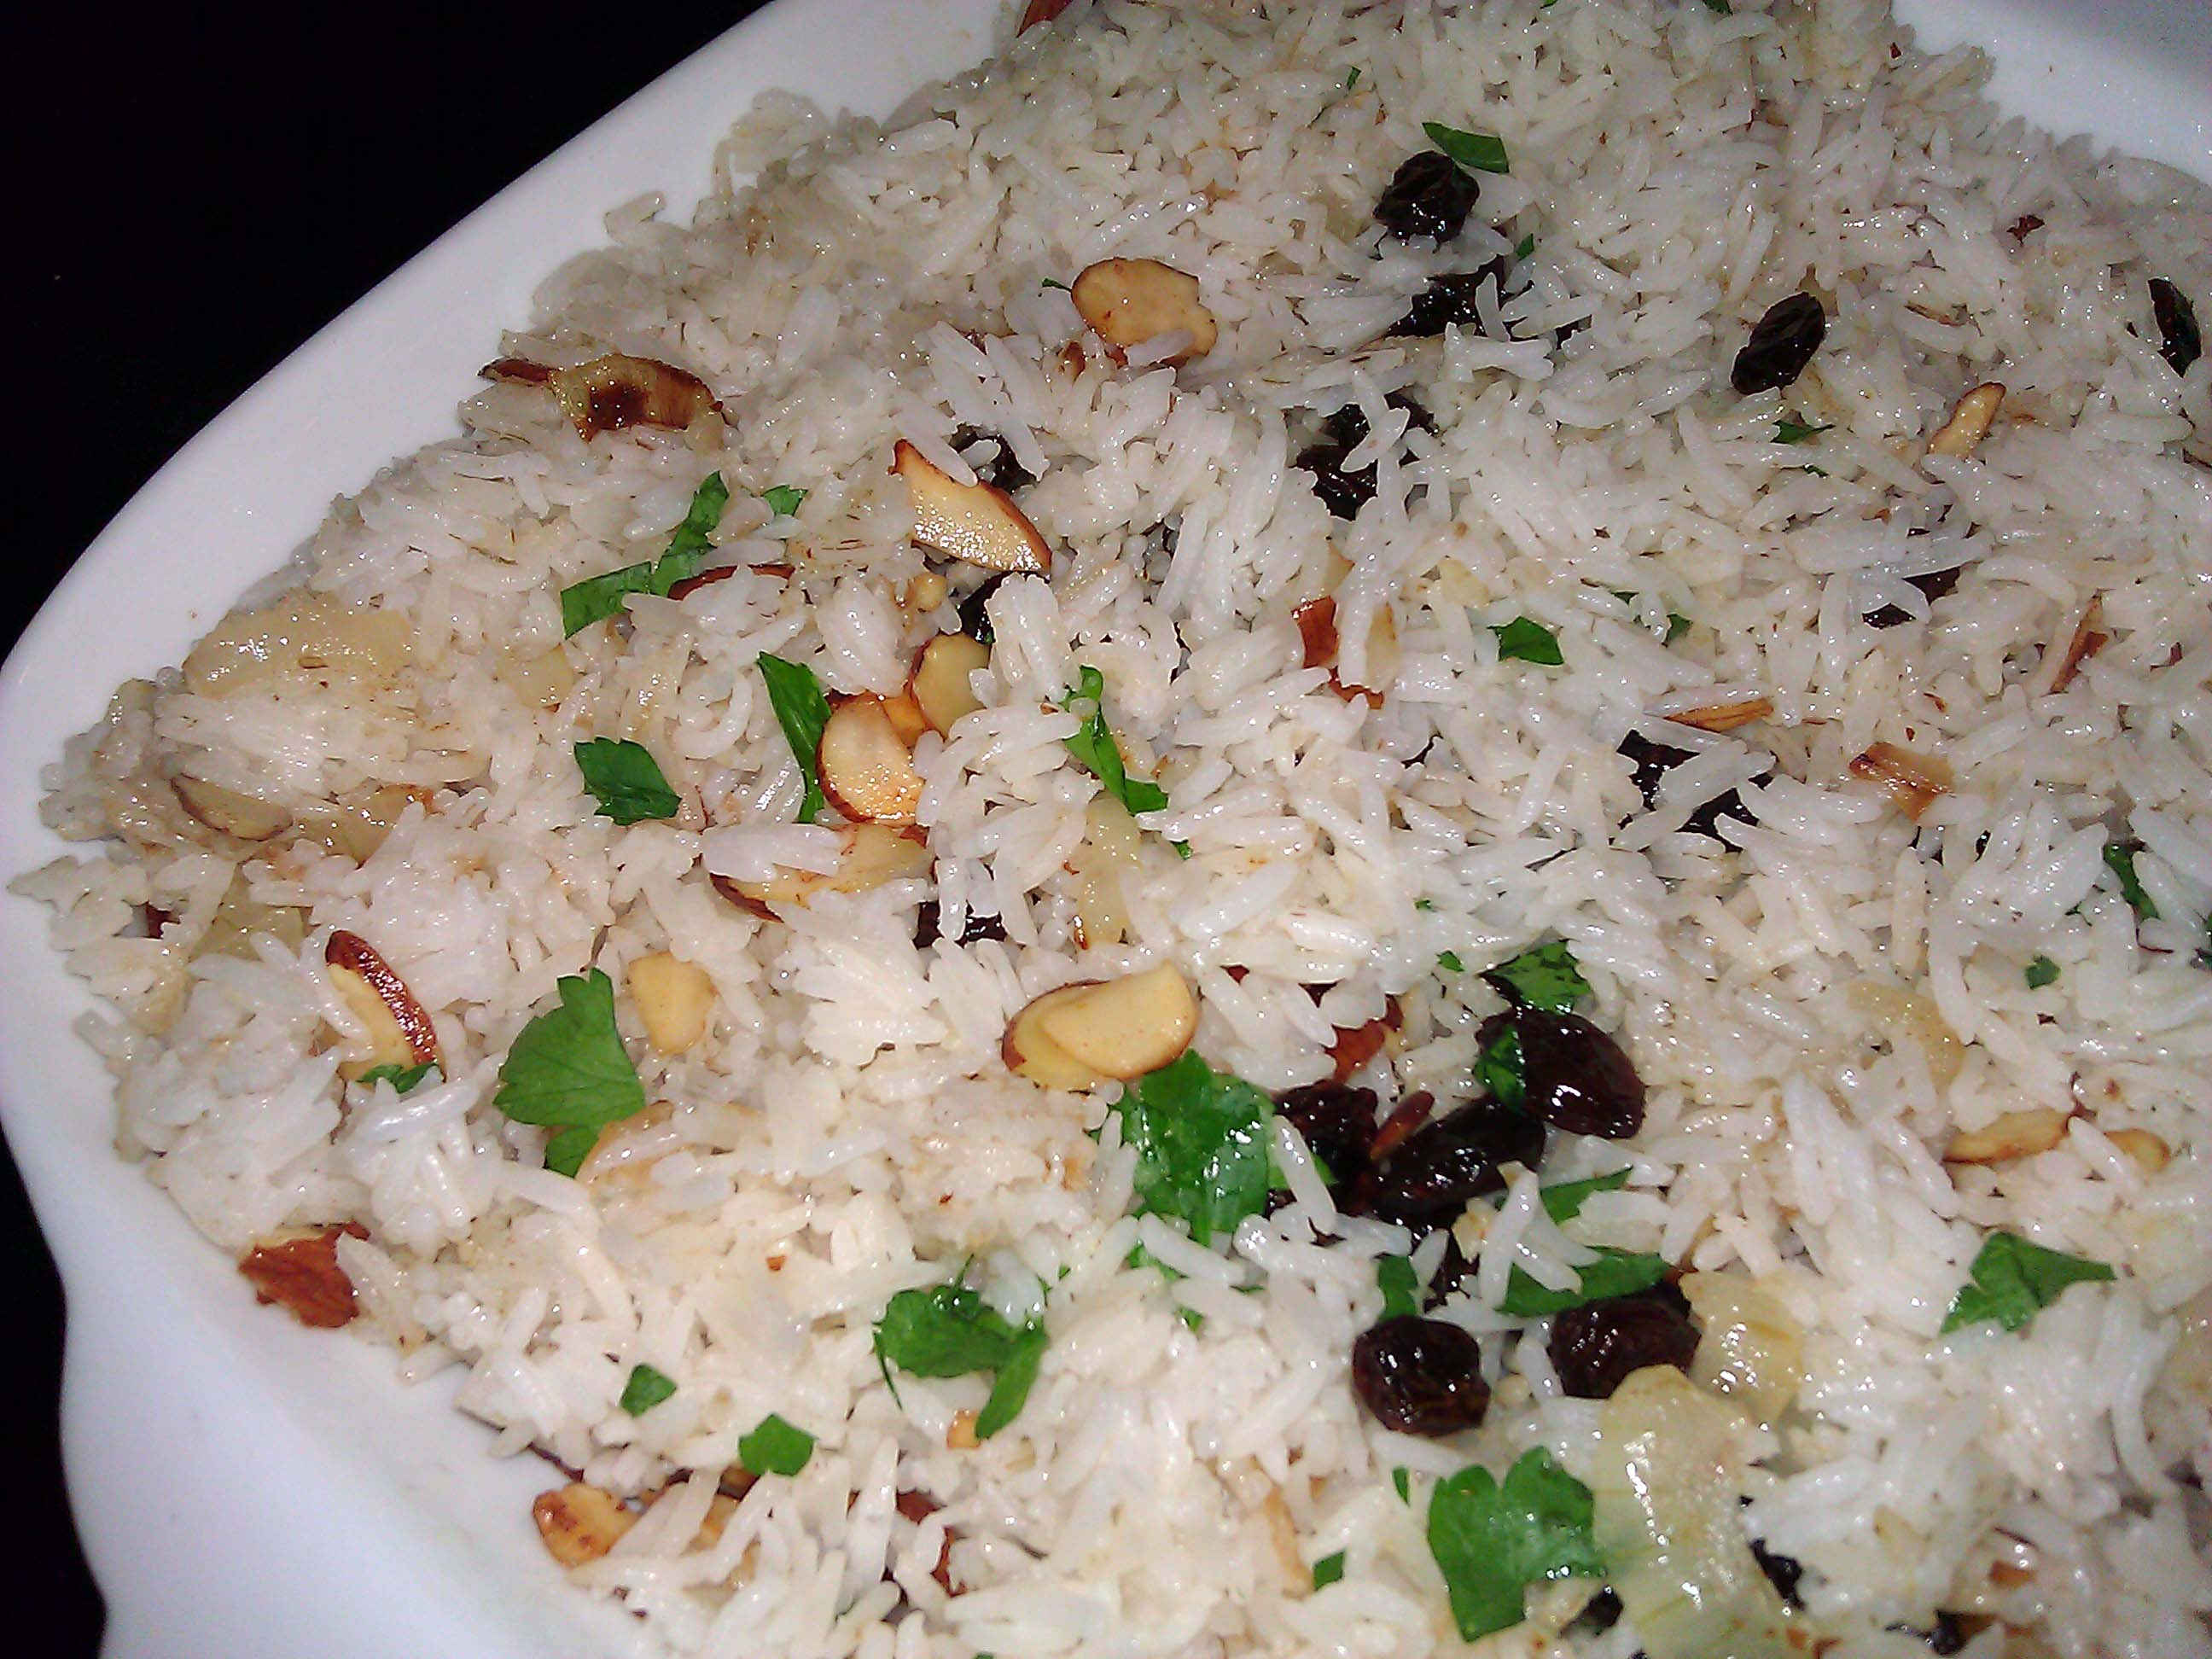 Quick and easy indian rice photos and indian rice recipes indian quick and easy indian rice photos and indian rice recipes indiannius kitchen forumfinder Gallery